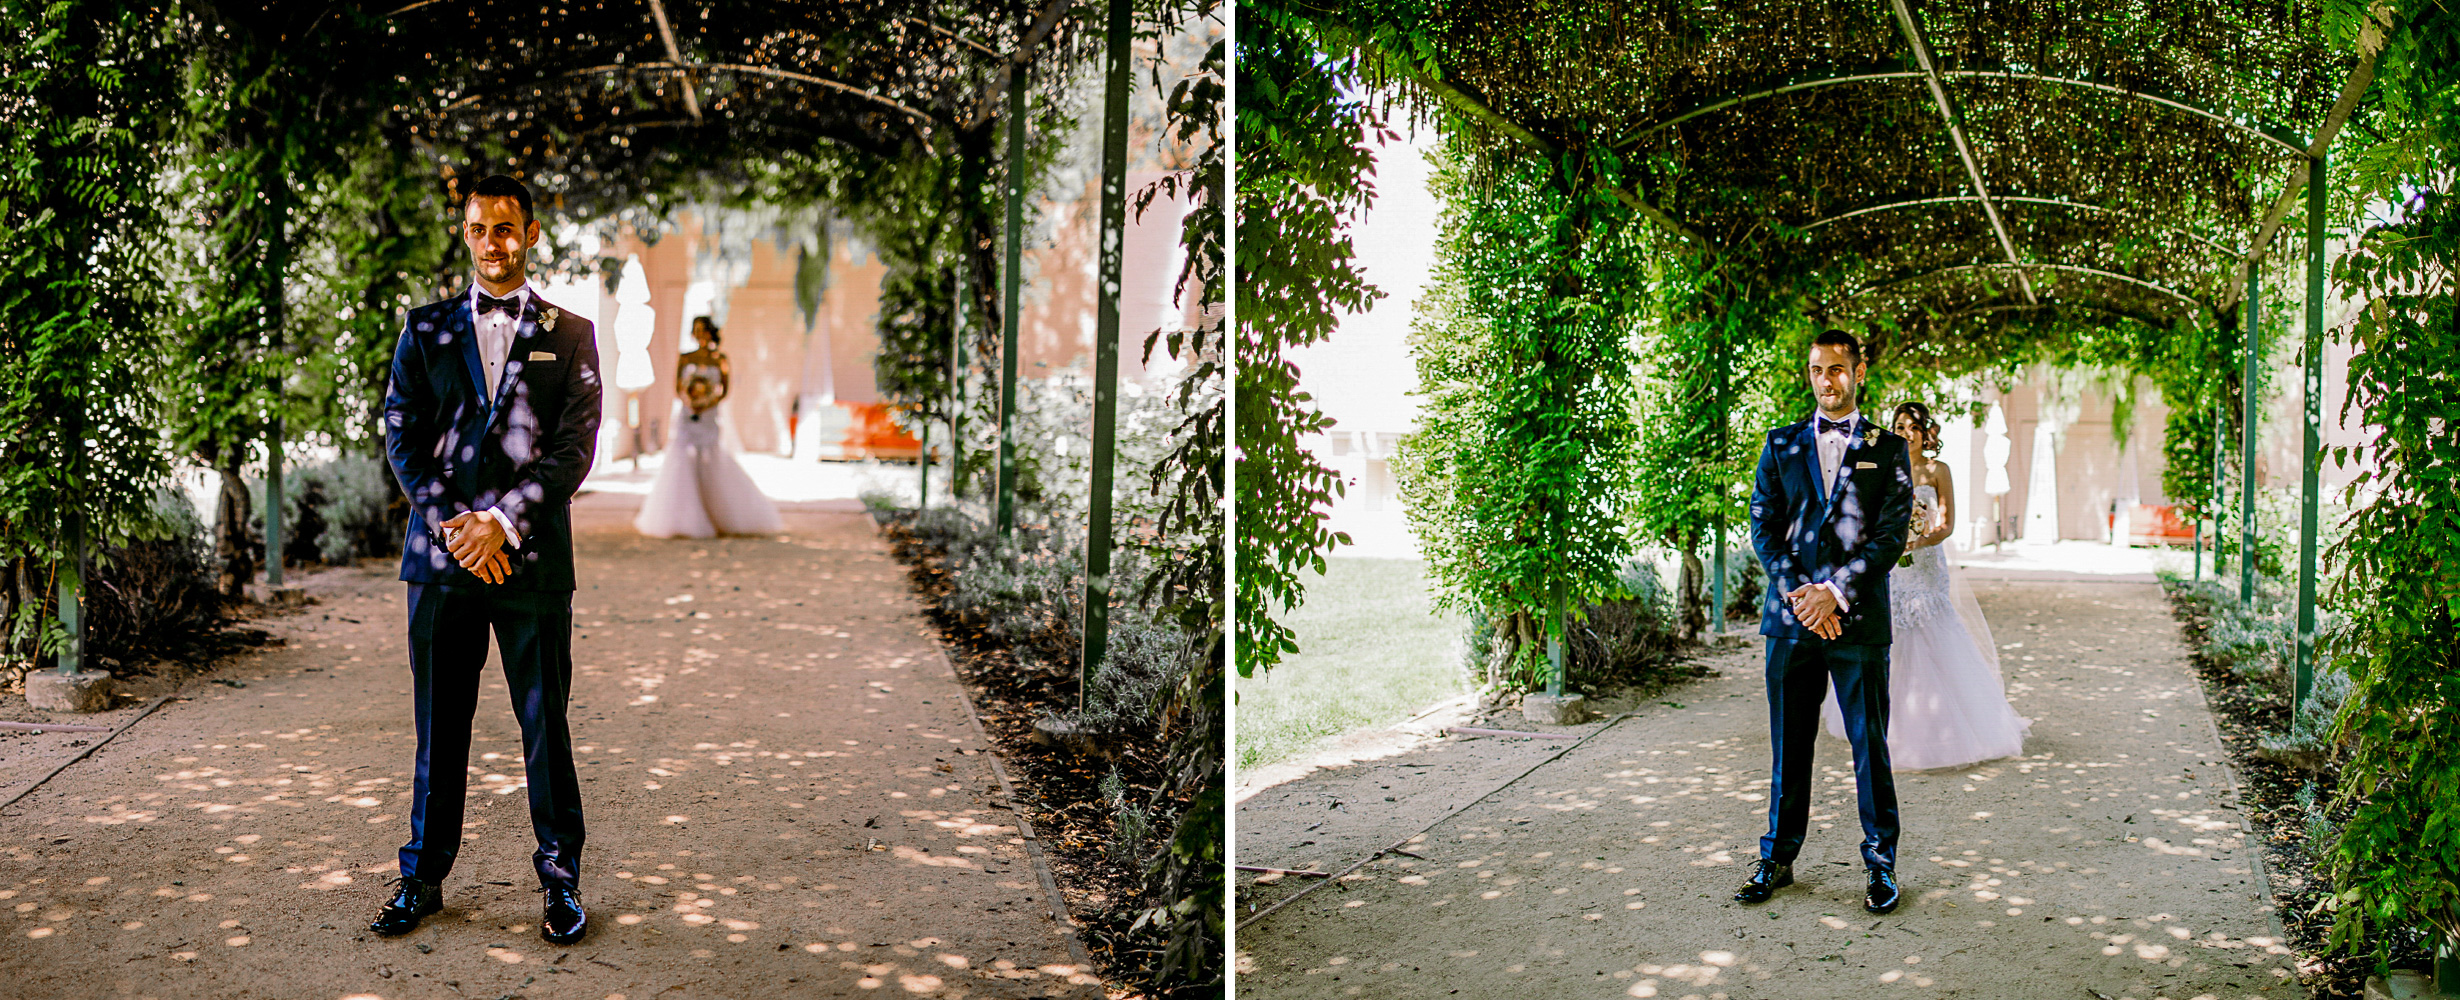 san diego wedding   photographer | collage of man in suit with woman behind her under walkway   with plants